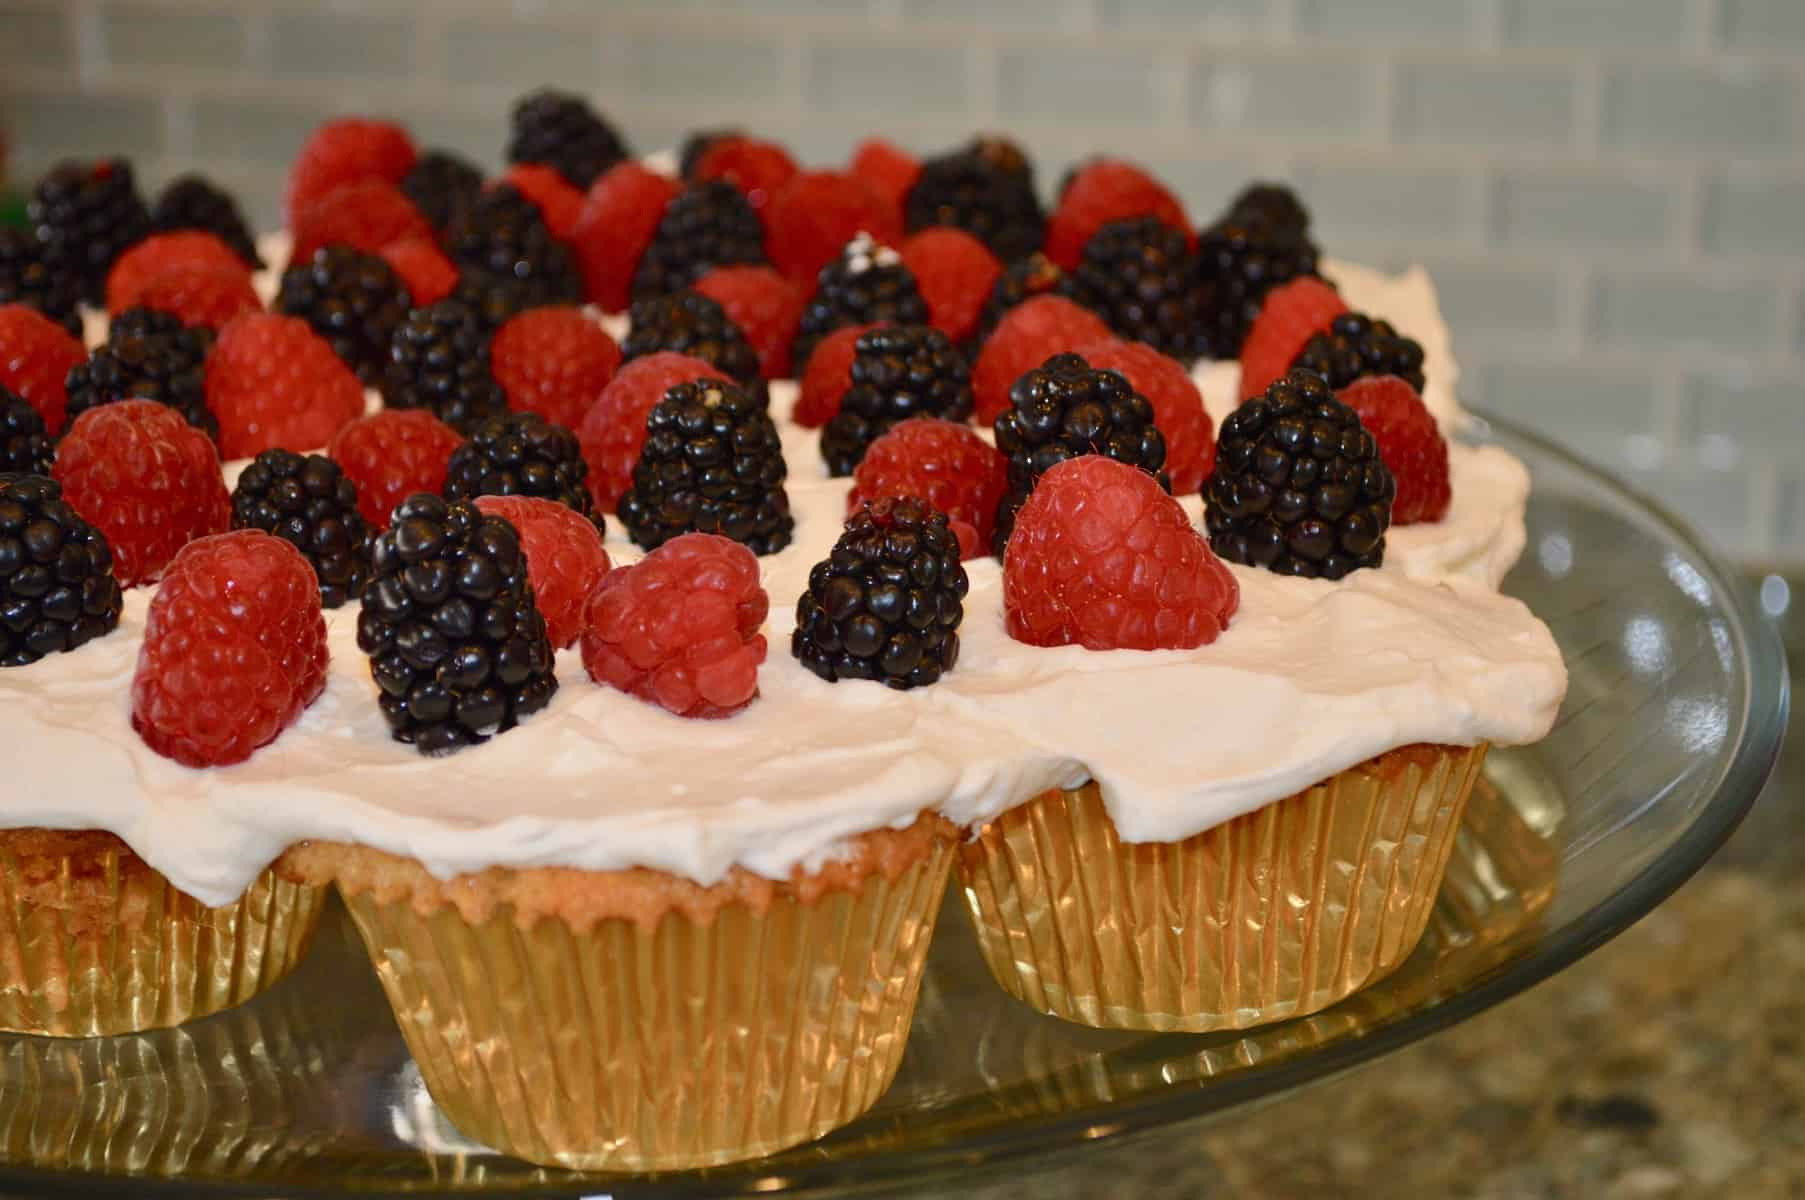 Pull-Apart Vanilla-Wafer Cupcakes with mixed berry topping on a glass pedestal